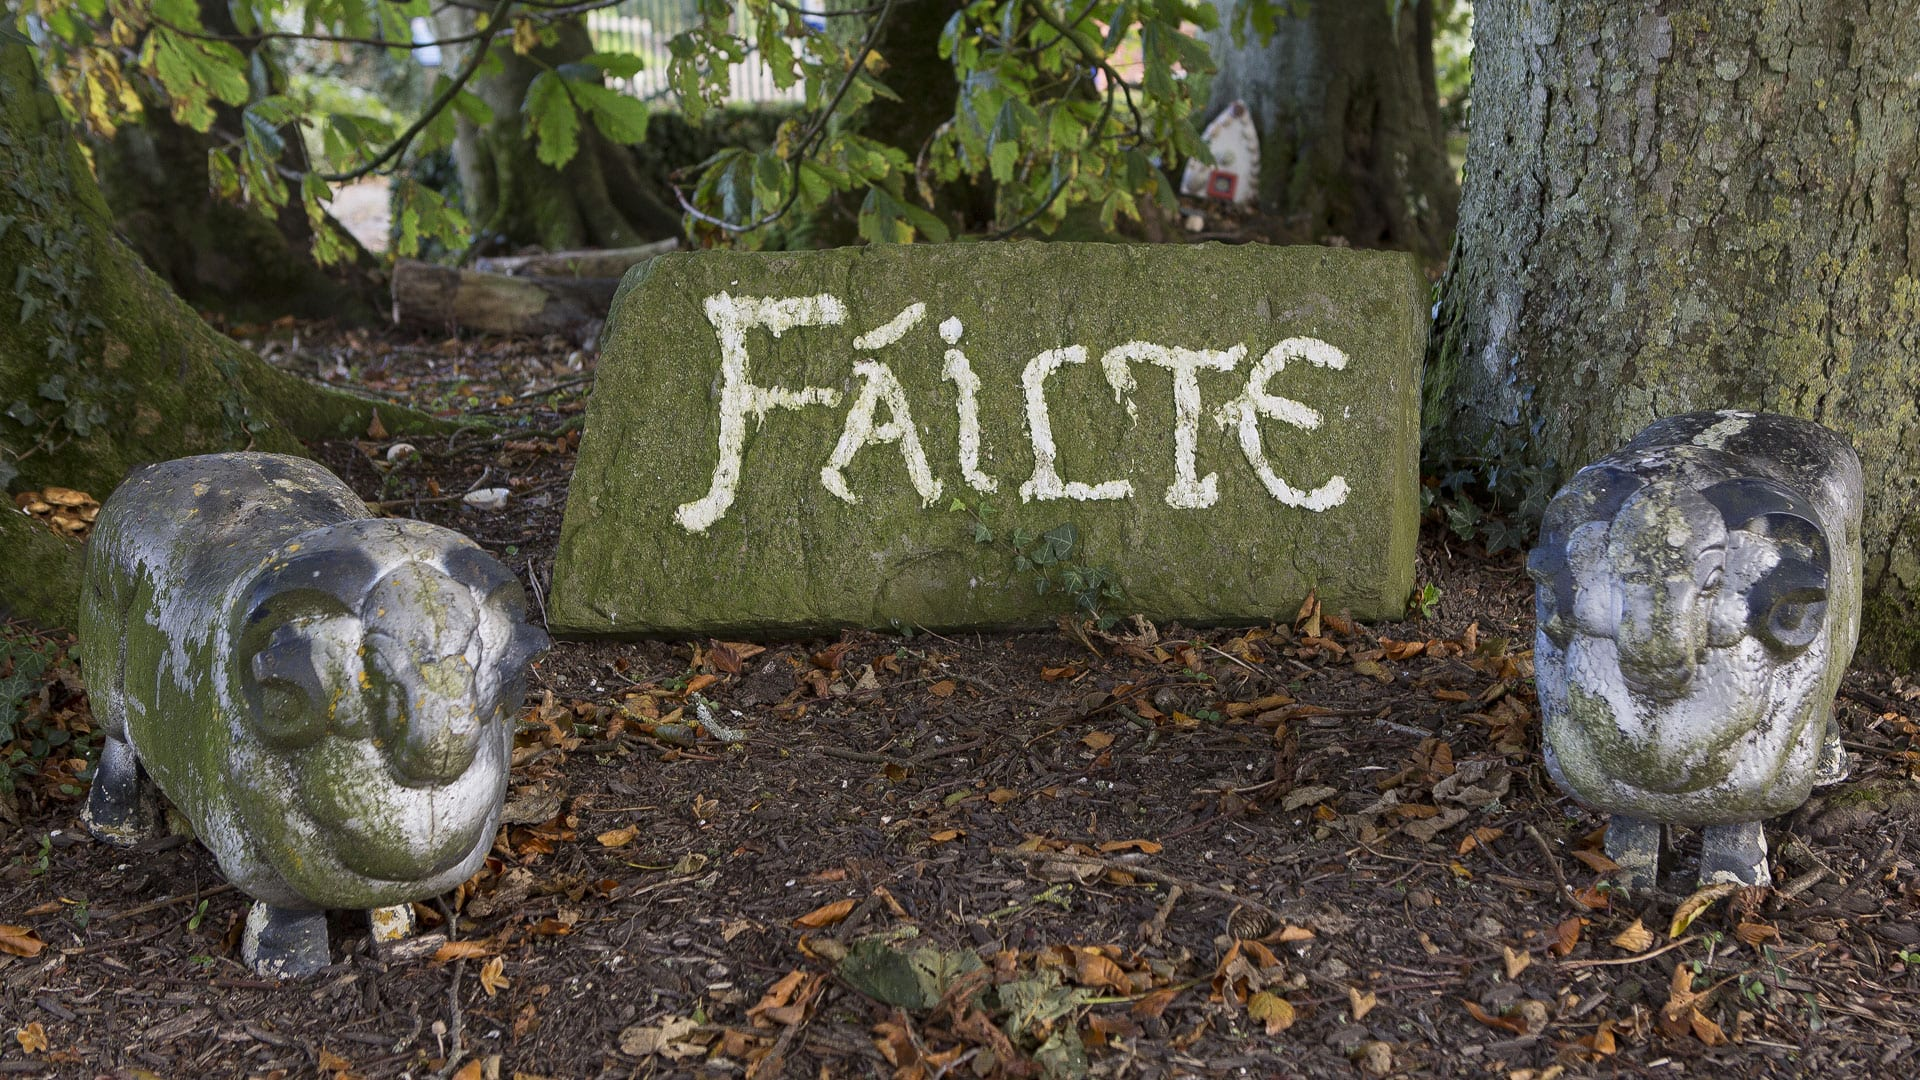 Statues-Failte-Welcome-Irish-Outdoors-Escape-Nature-Field-Trees-Farm-Holiday-Homes-Ireland-Meath-Dunshaughlin-Self-Catering